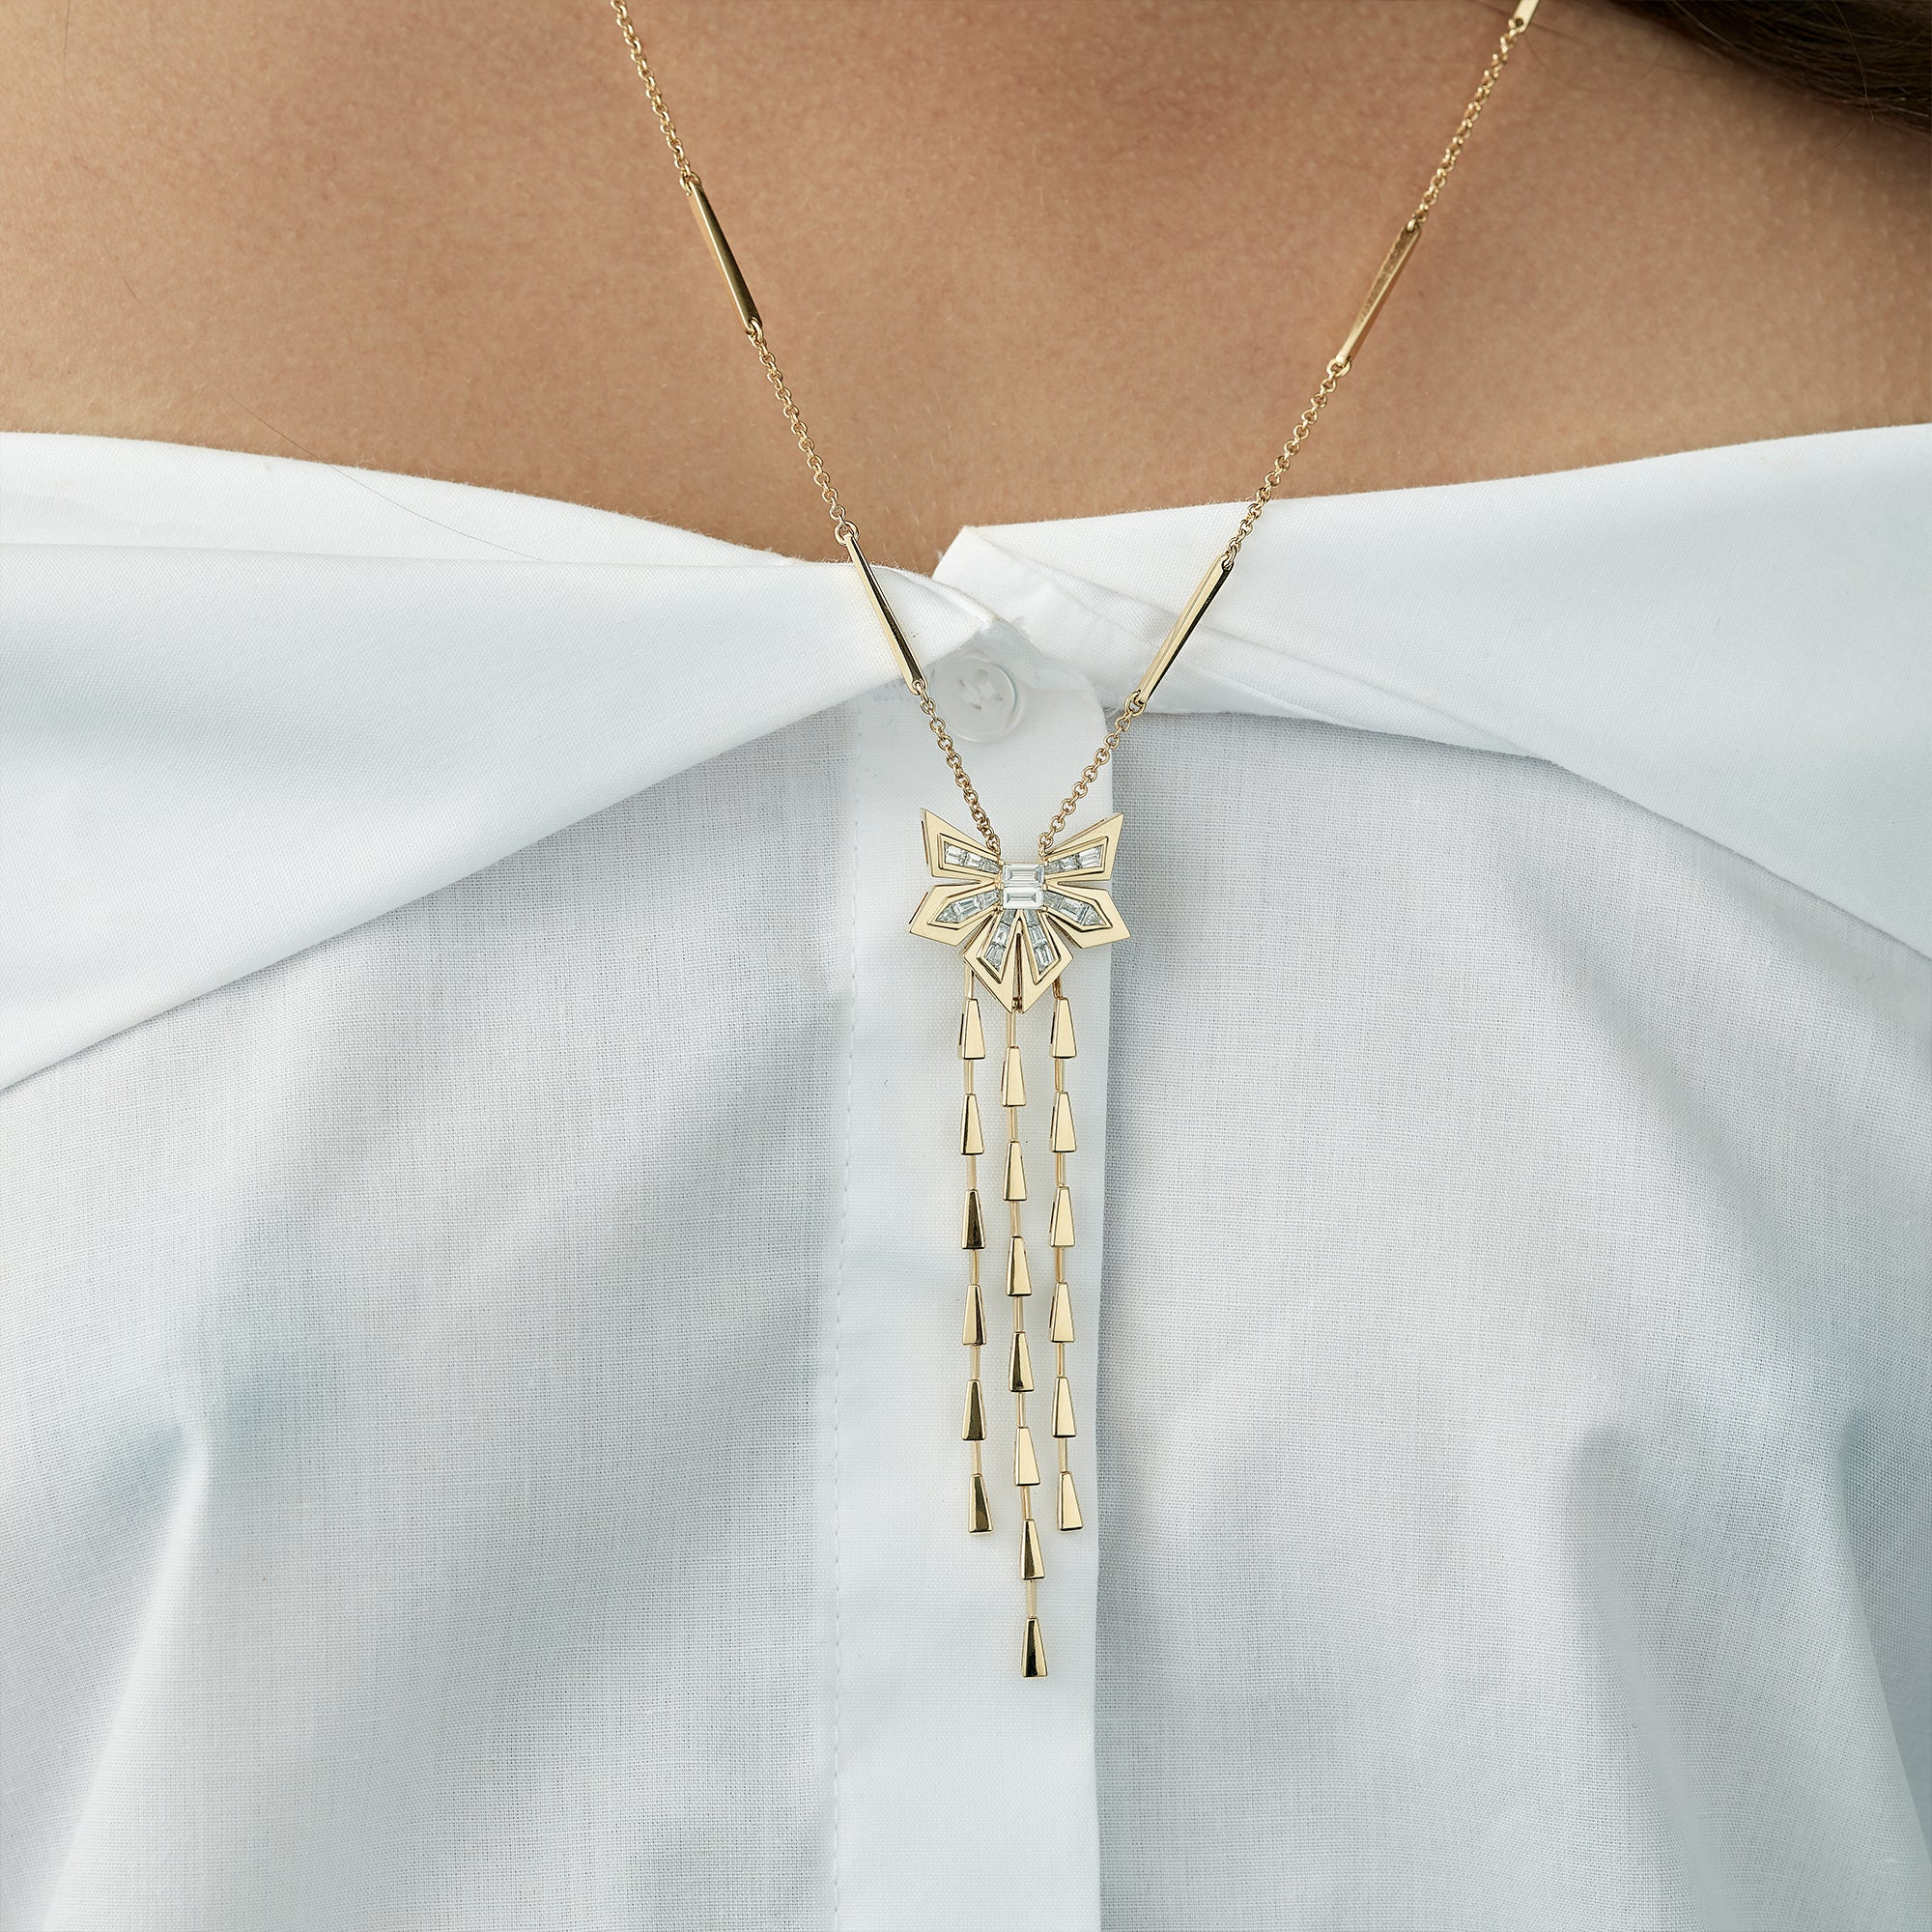 Stephen Webster - Dynamite Cascade Necklace